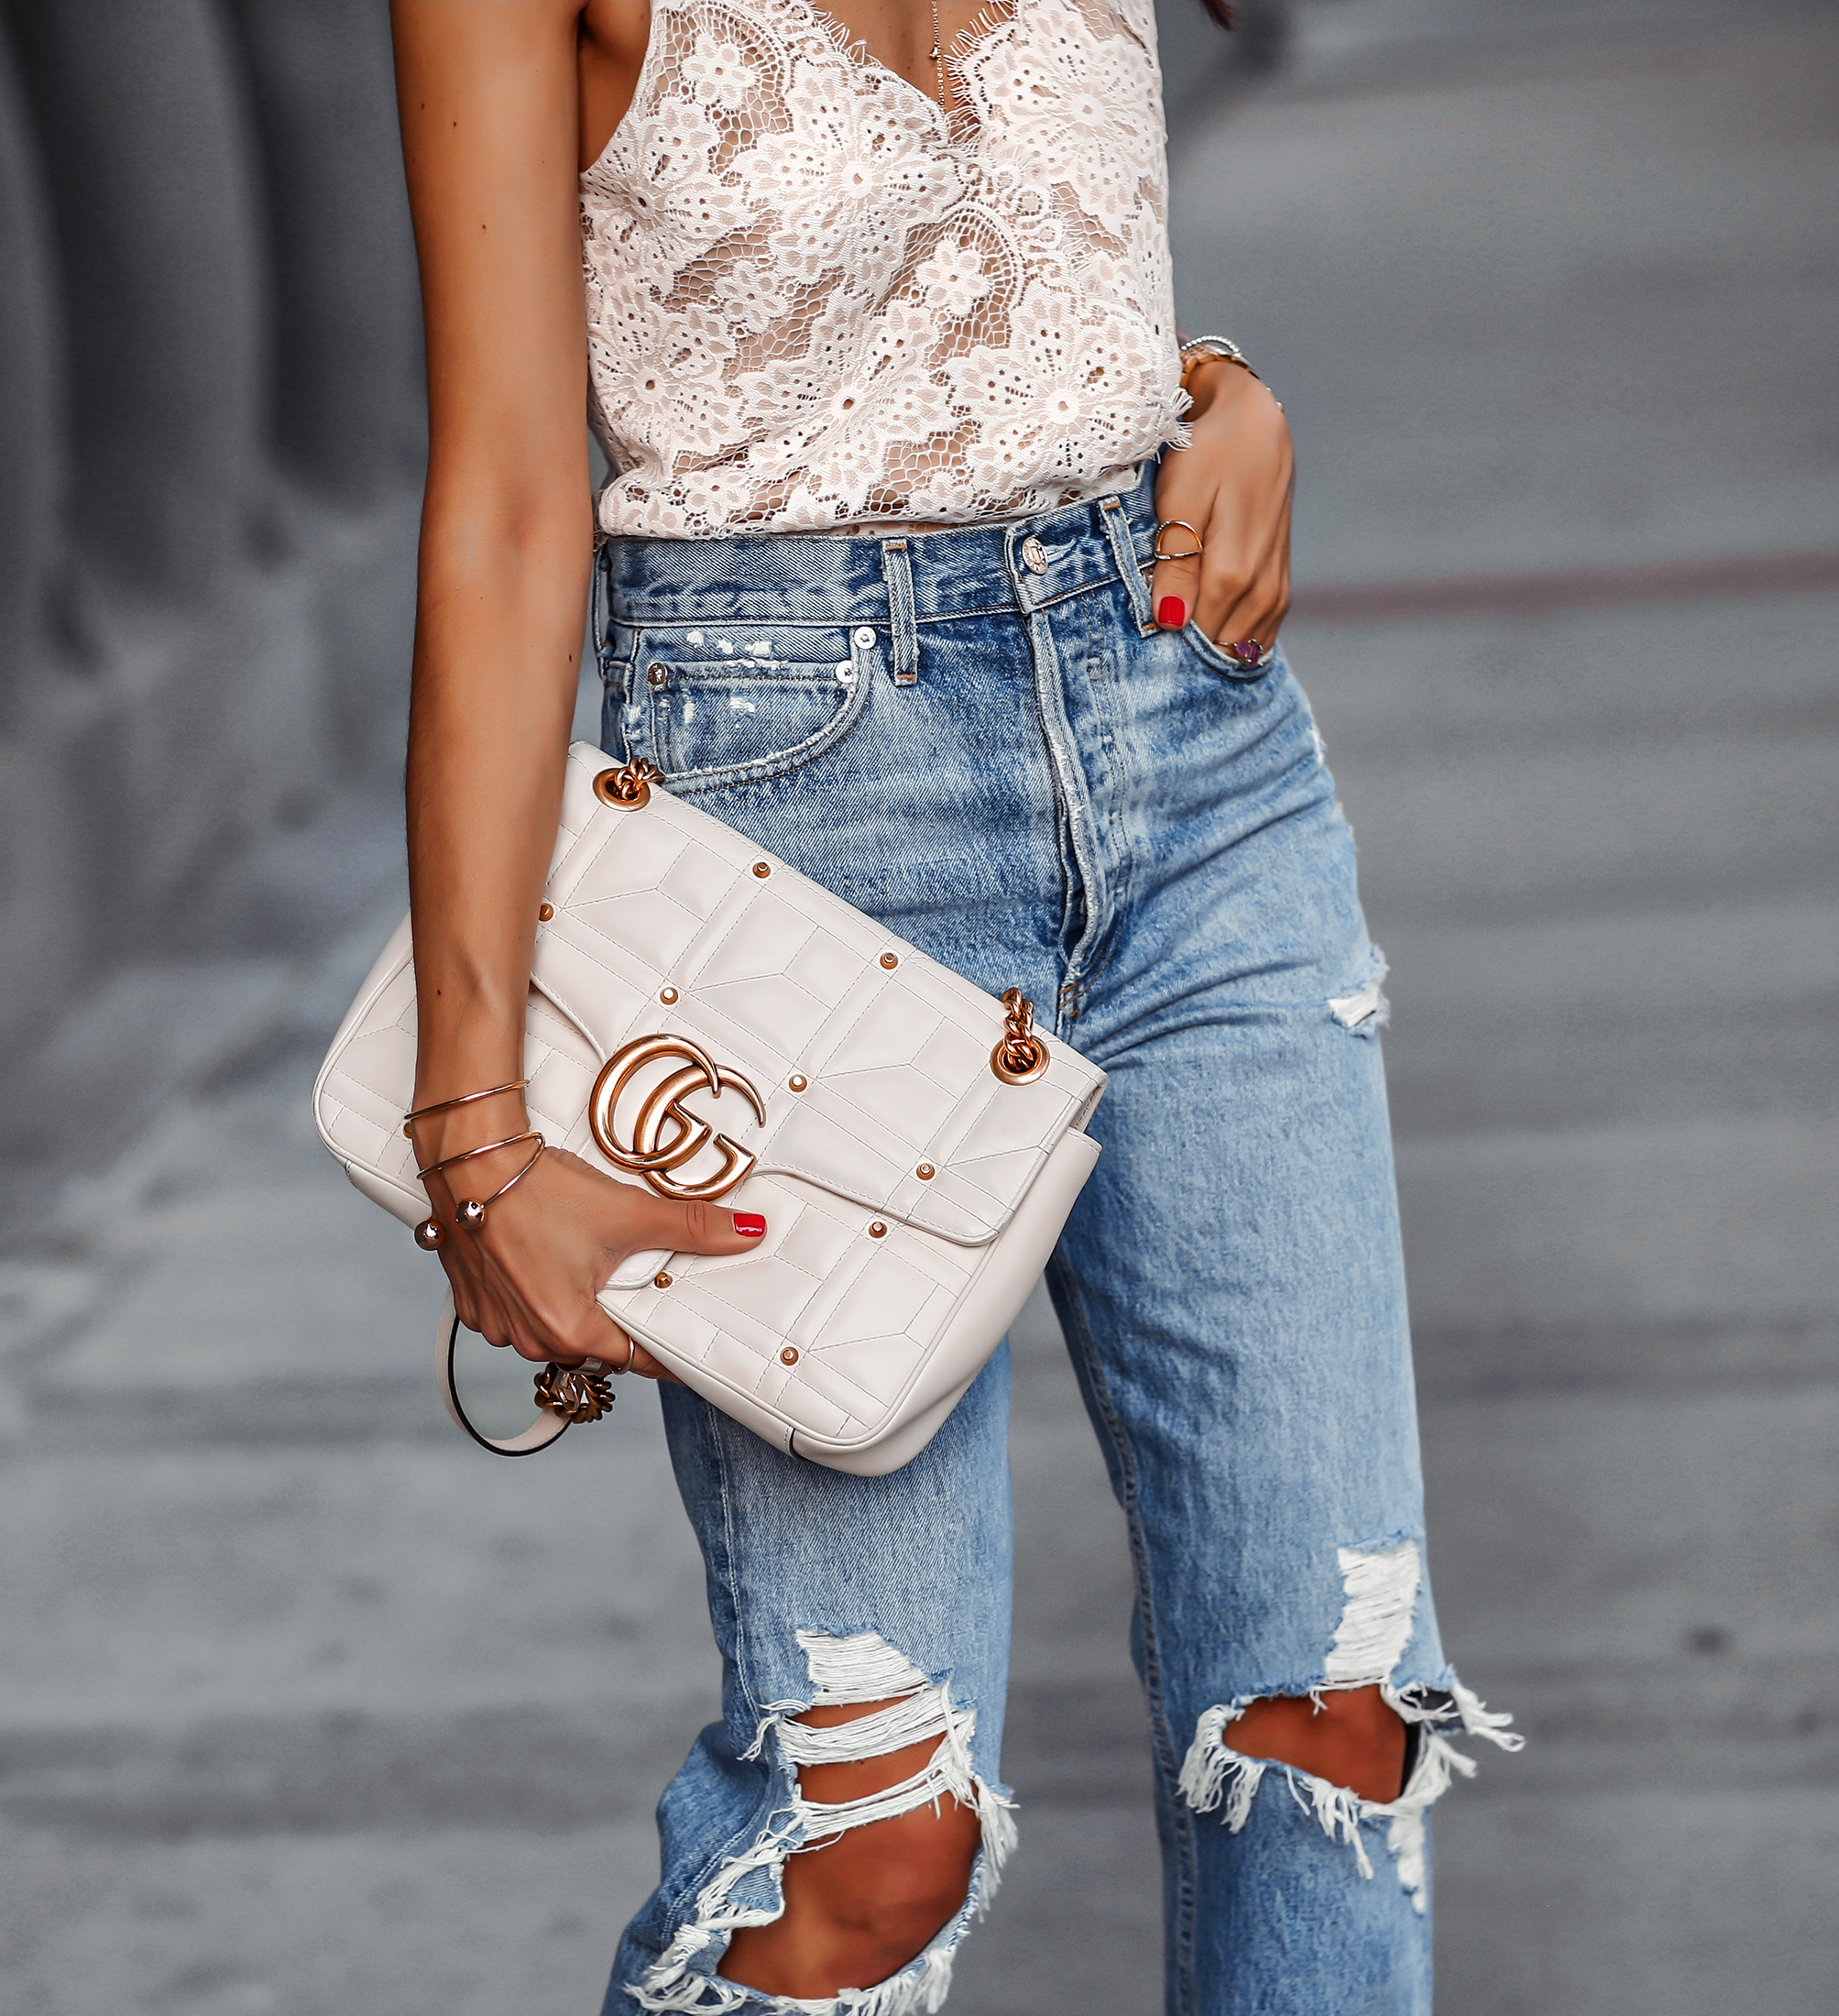 Details Shot of Woman Ripped jeans White Gucci Marmont Bag